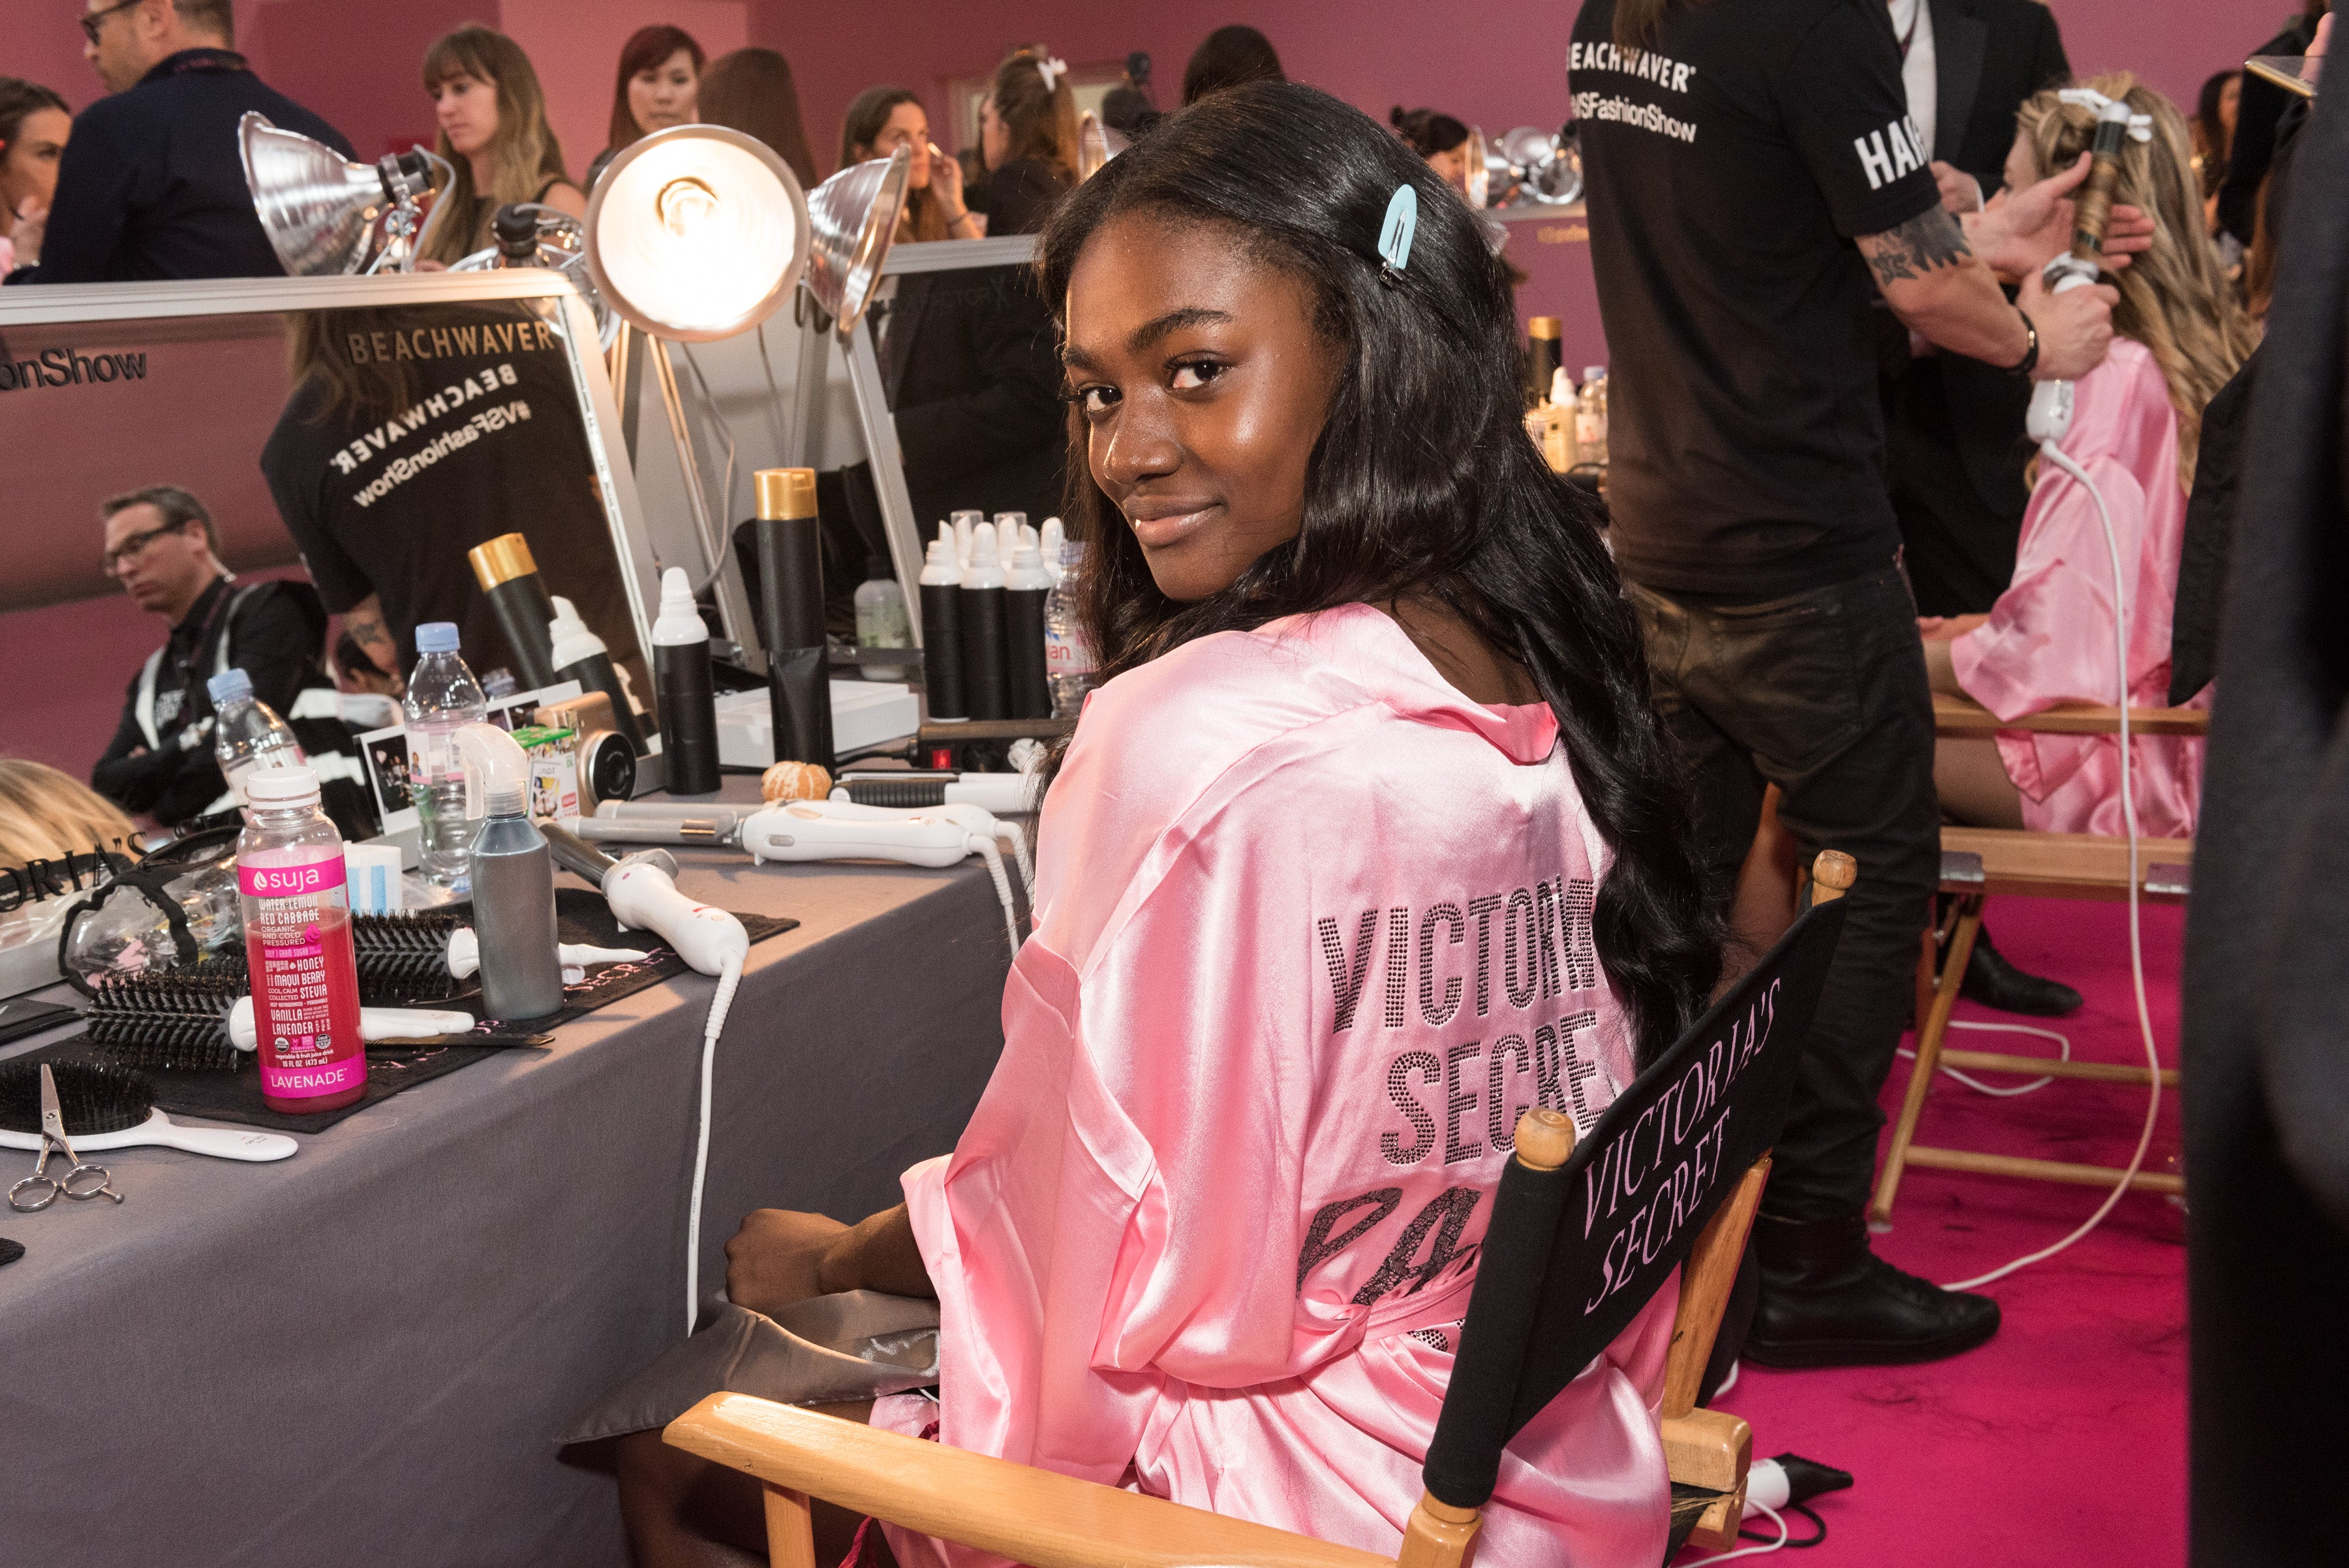 Black Twitter Calls Out Victoria's Secret For This Model's Unkempt Hair